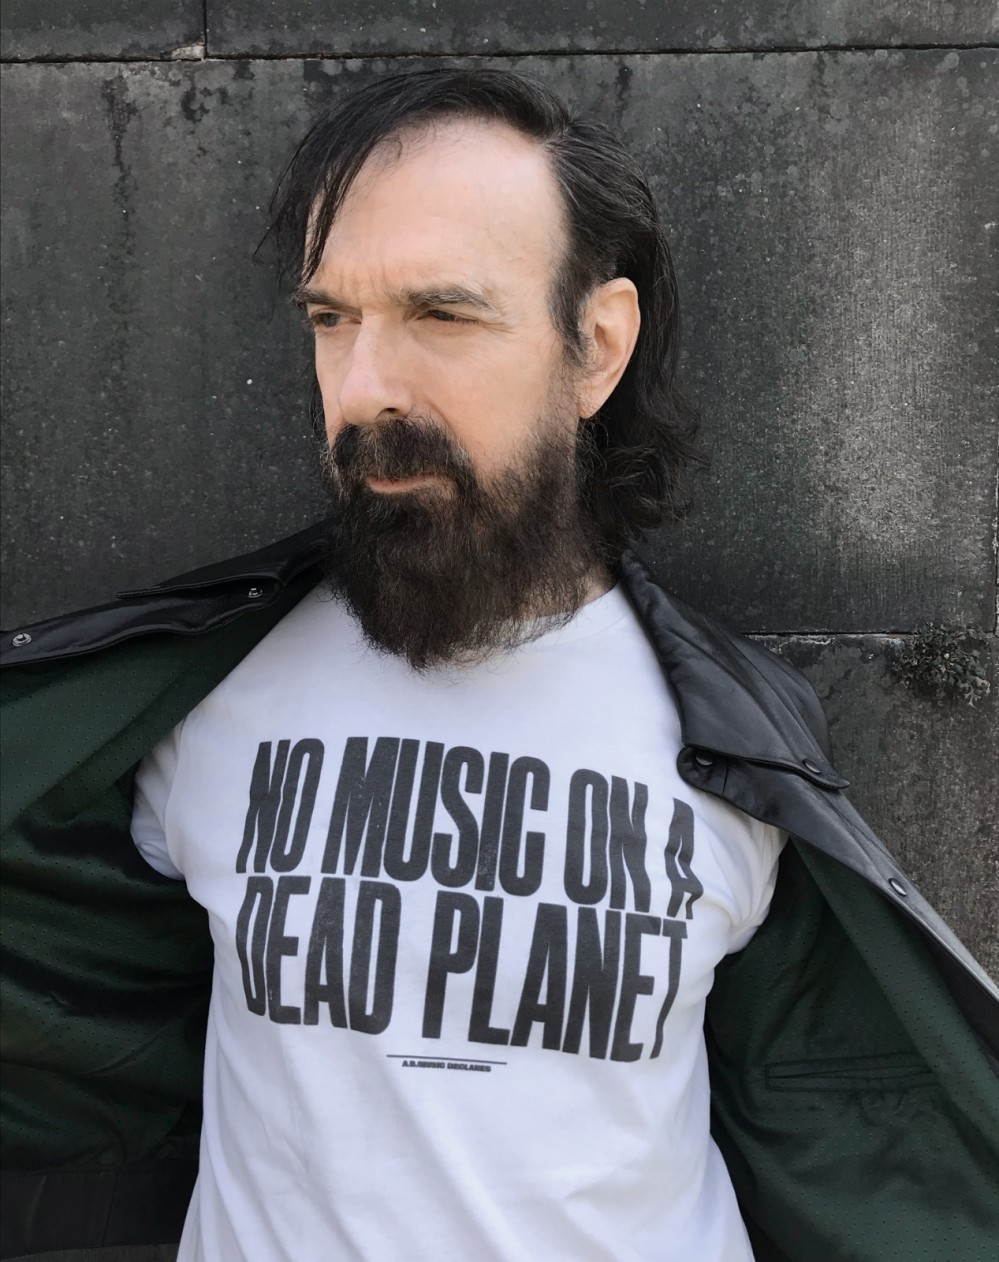 The Bad Seeds' Jim Sclavunos supports No Music On Dead Planet. Credit: Jim Sclavunos